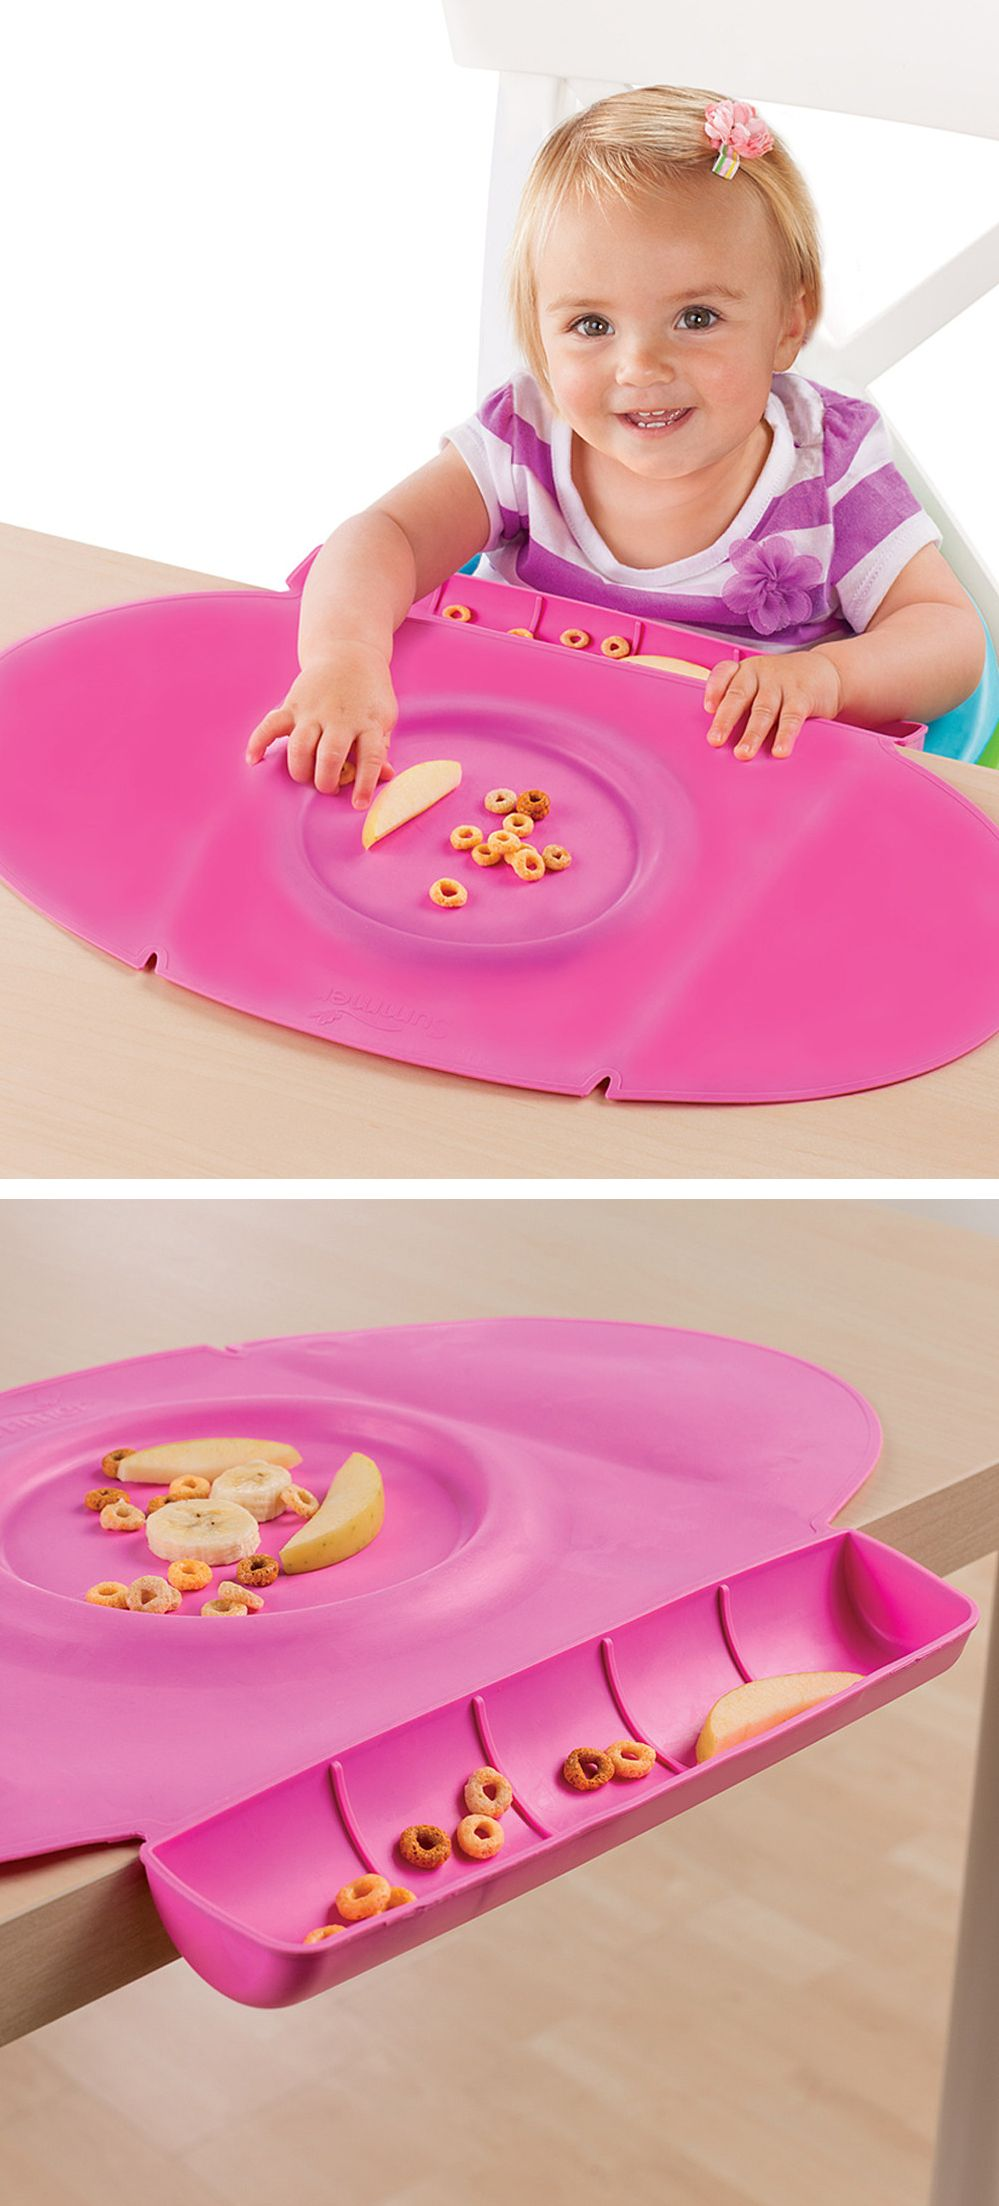 Baby Place Mat Has A Scoop To Catch Food Contains